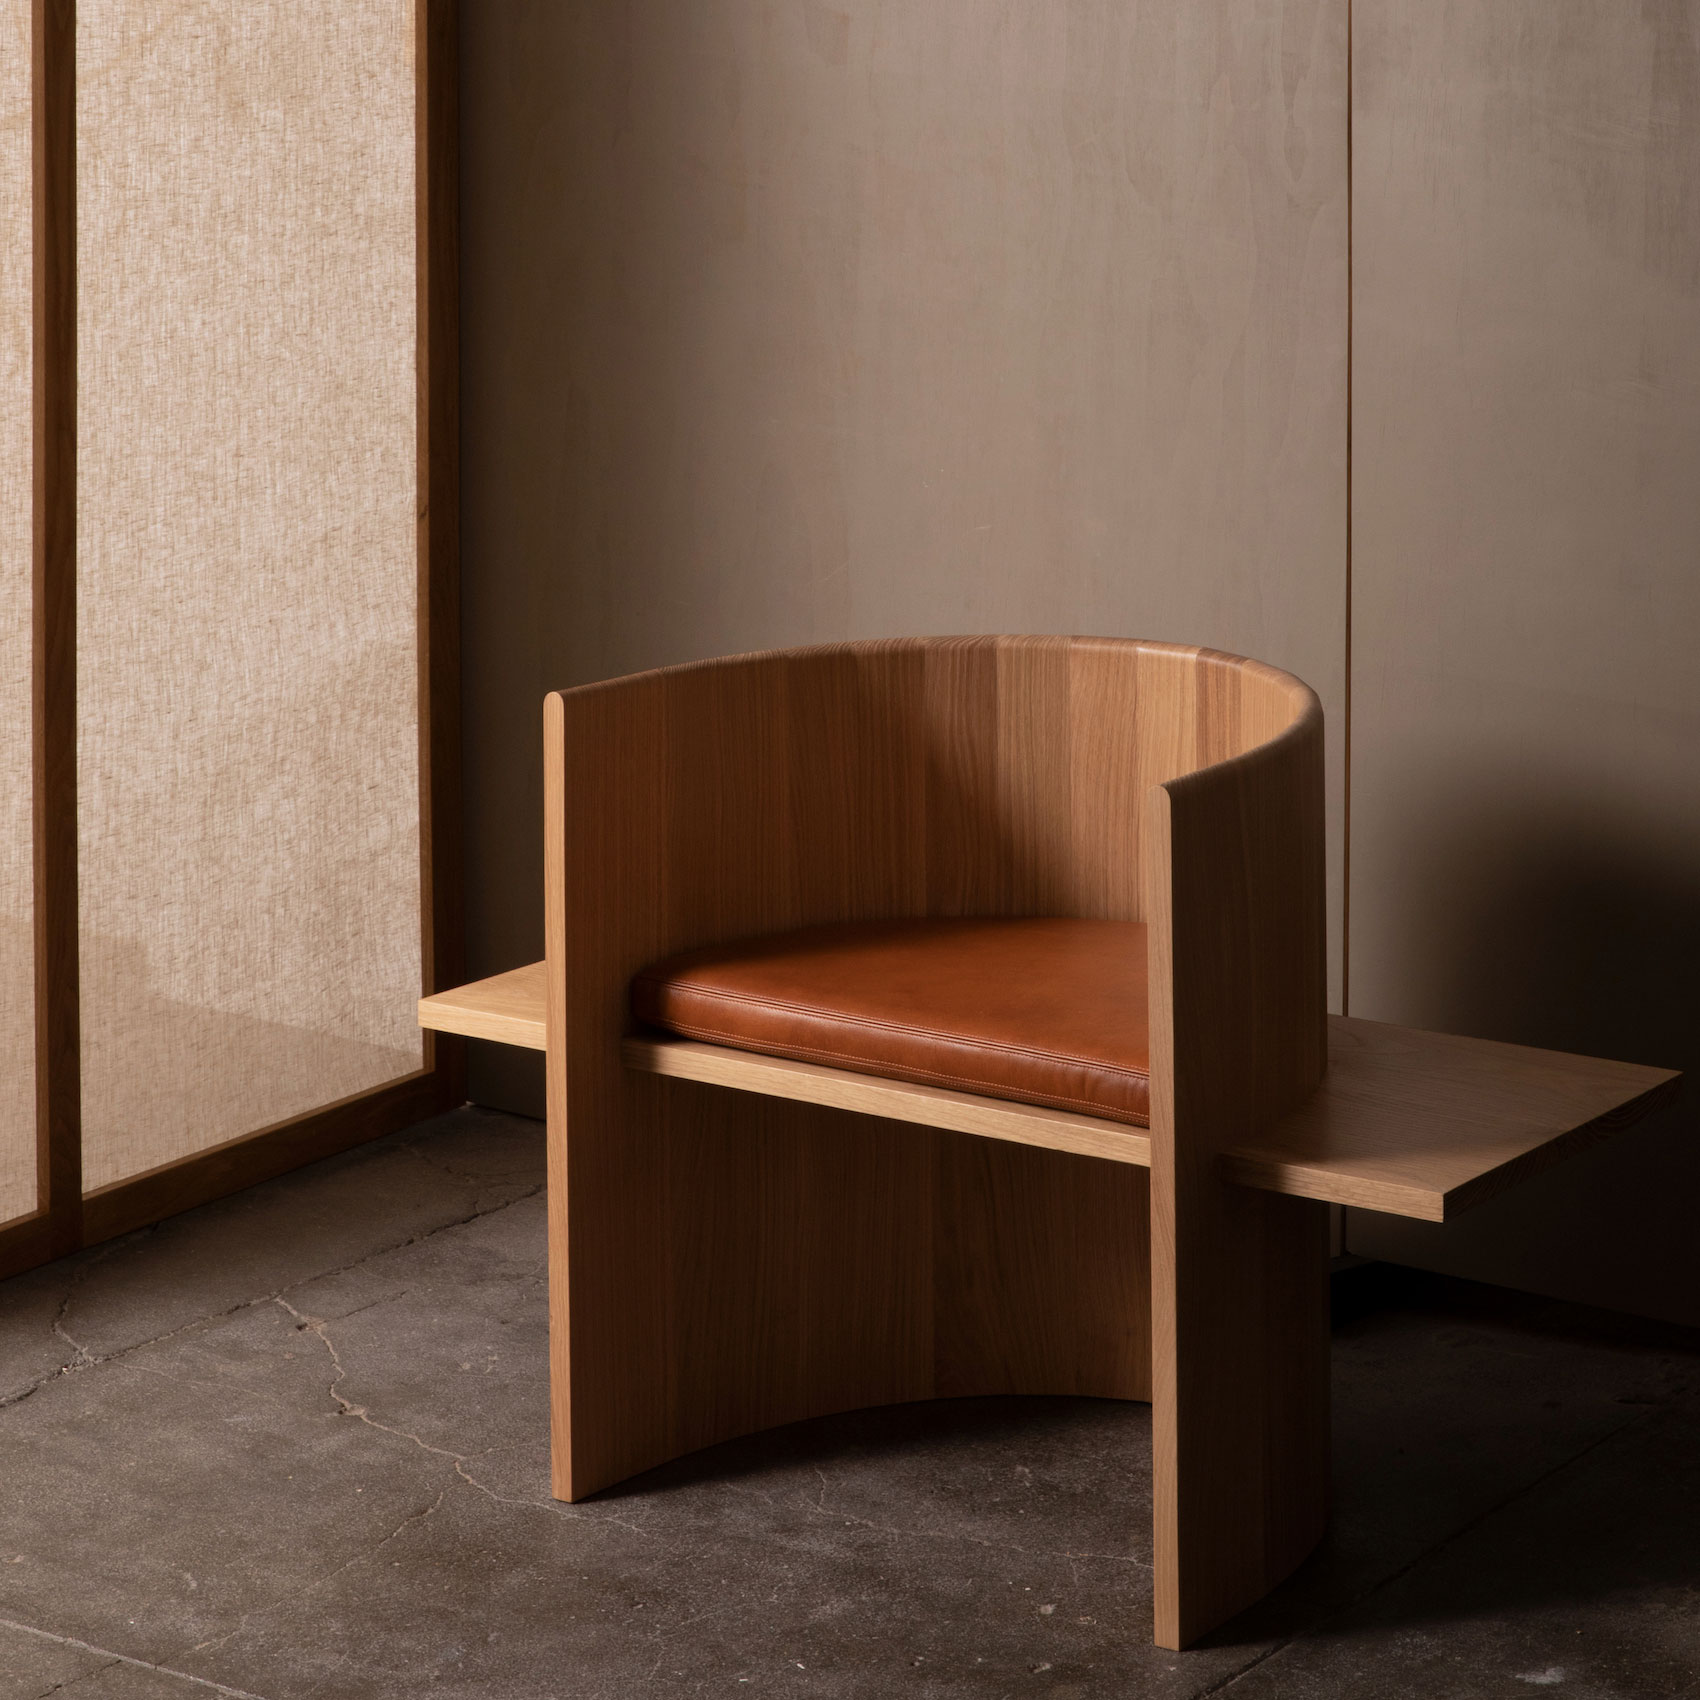 Minimalist Furniture Collection One By Campagna Sohomod Blog